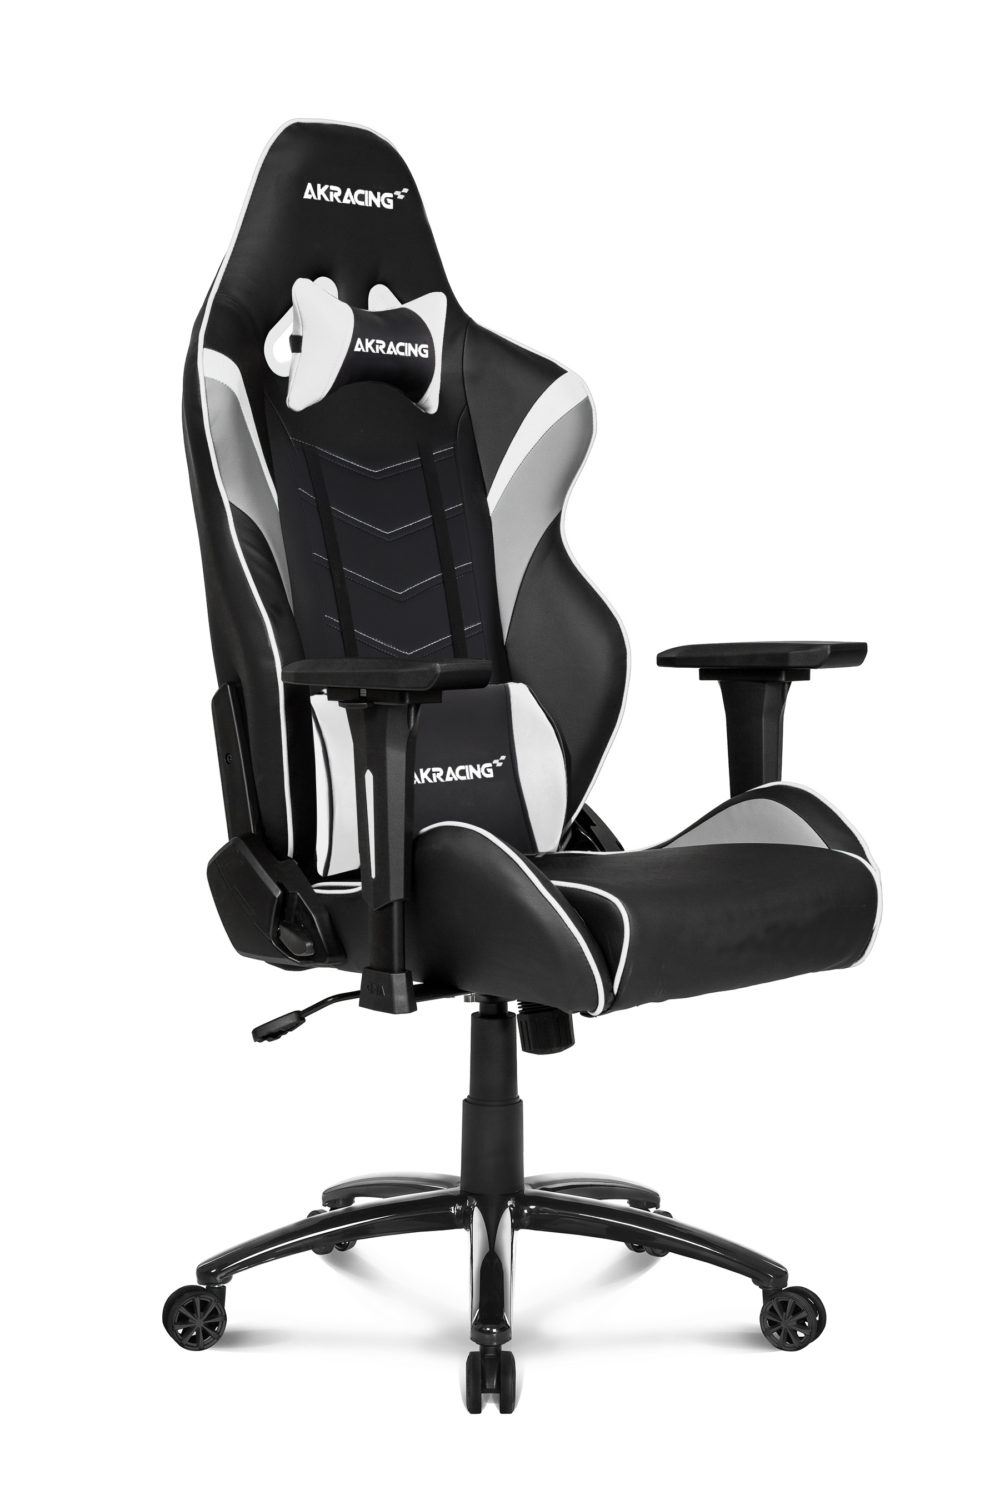 AKRacing Core LX office/computer chair Padded seat Padded backrest  sc 1 st  pc parts u0026 component store & PC PARTS u0026 COMPONENT STORE - AKRacing Core LX office/computer chair ...